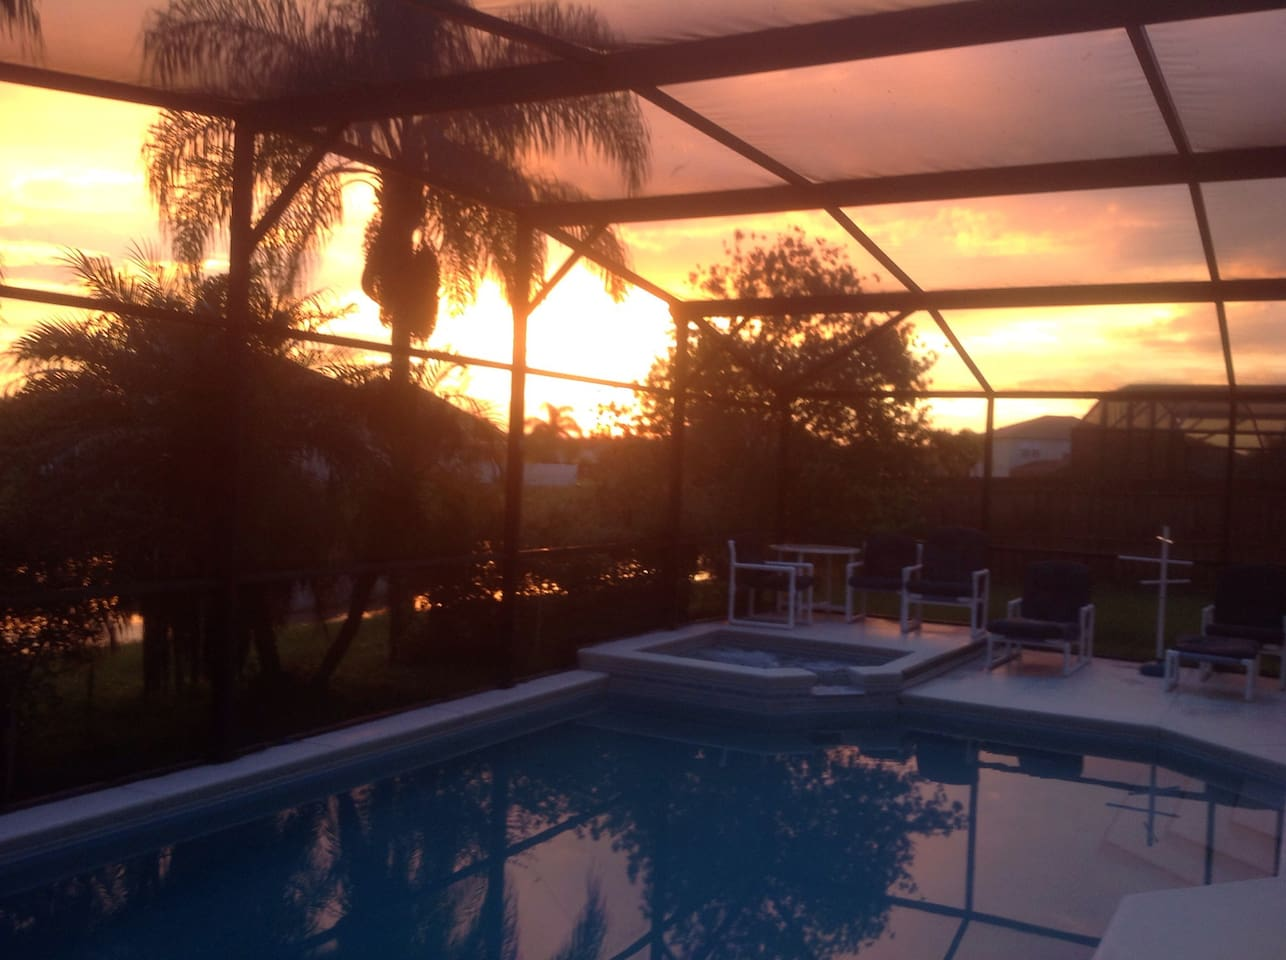 Sunset over the pool and spa within private gardens overlooking our lake